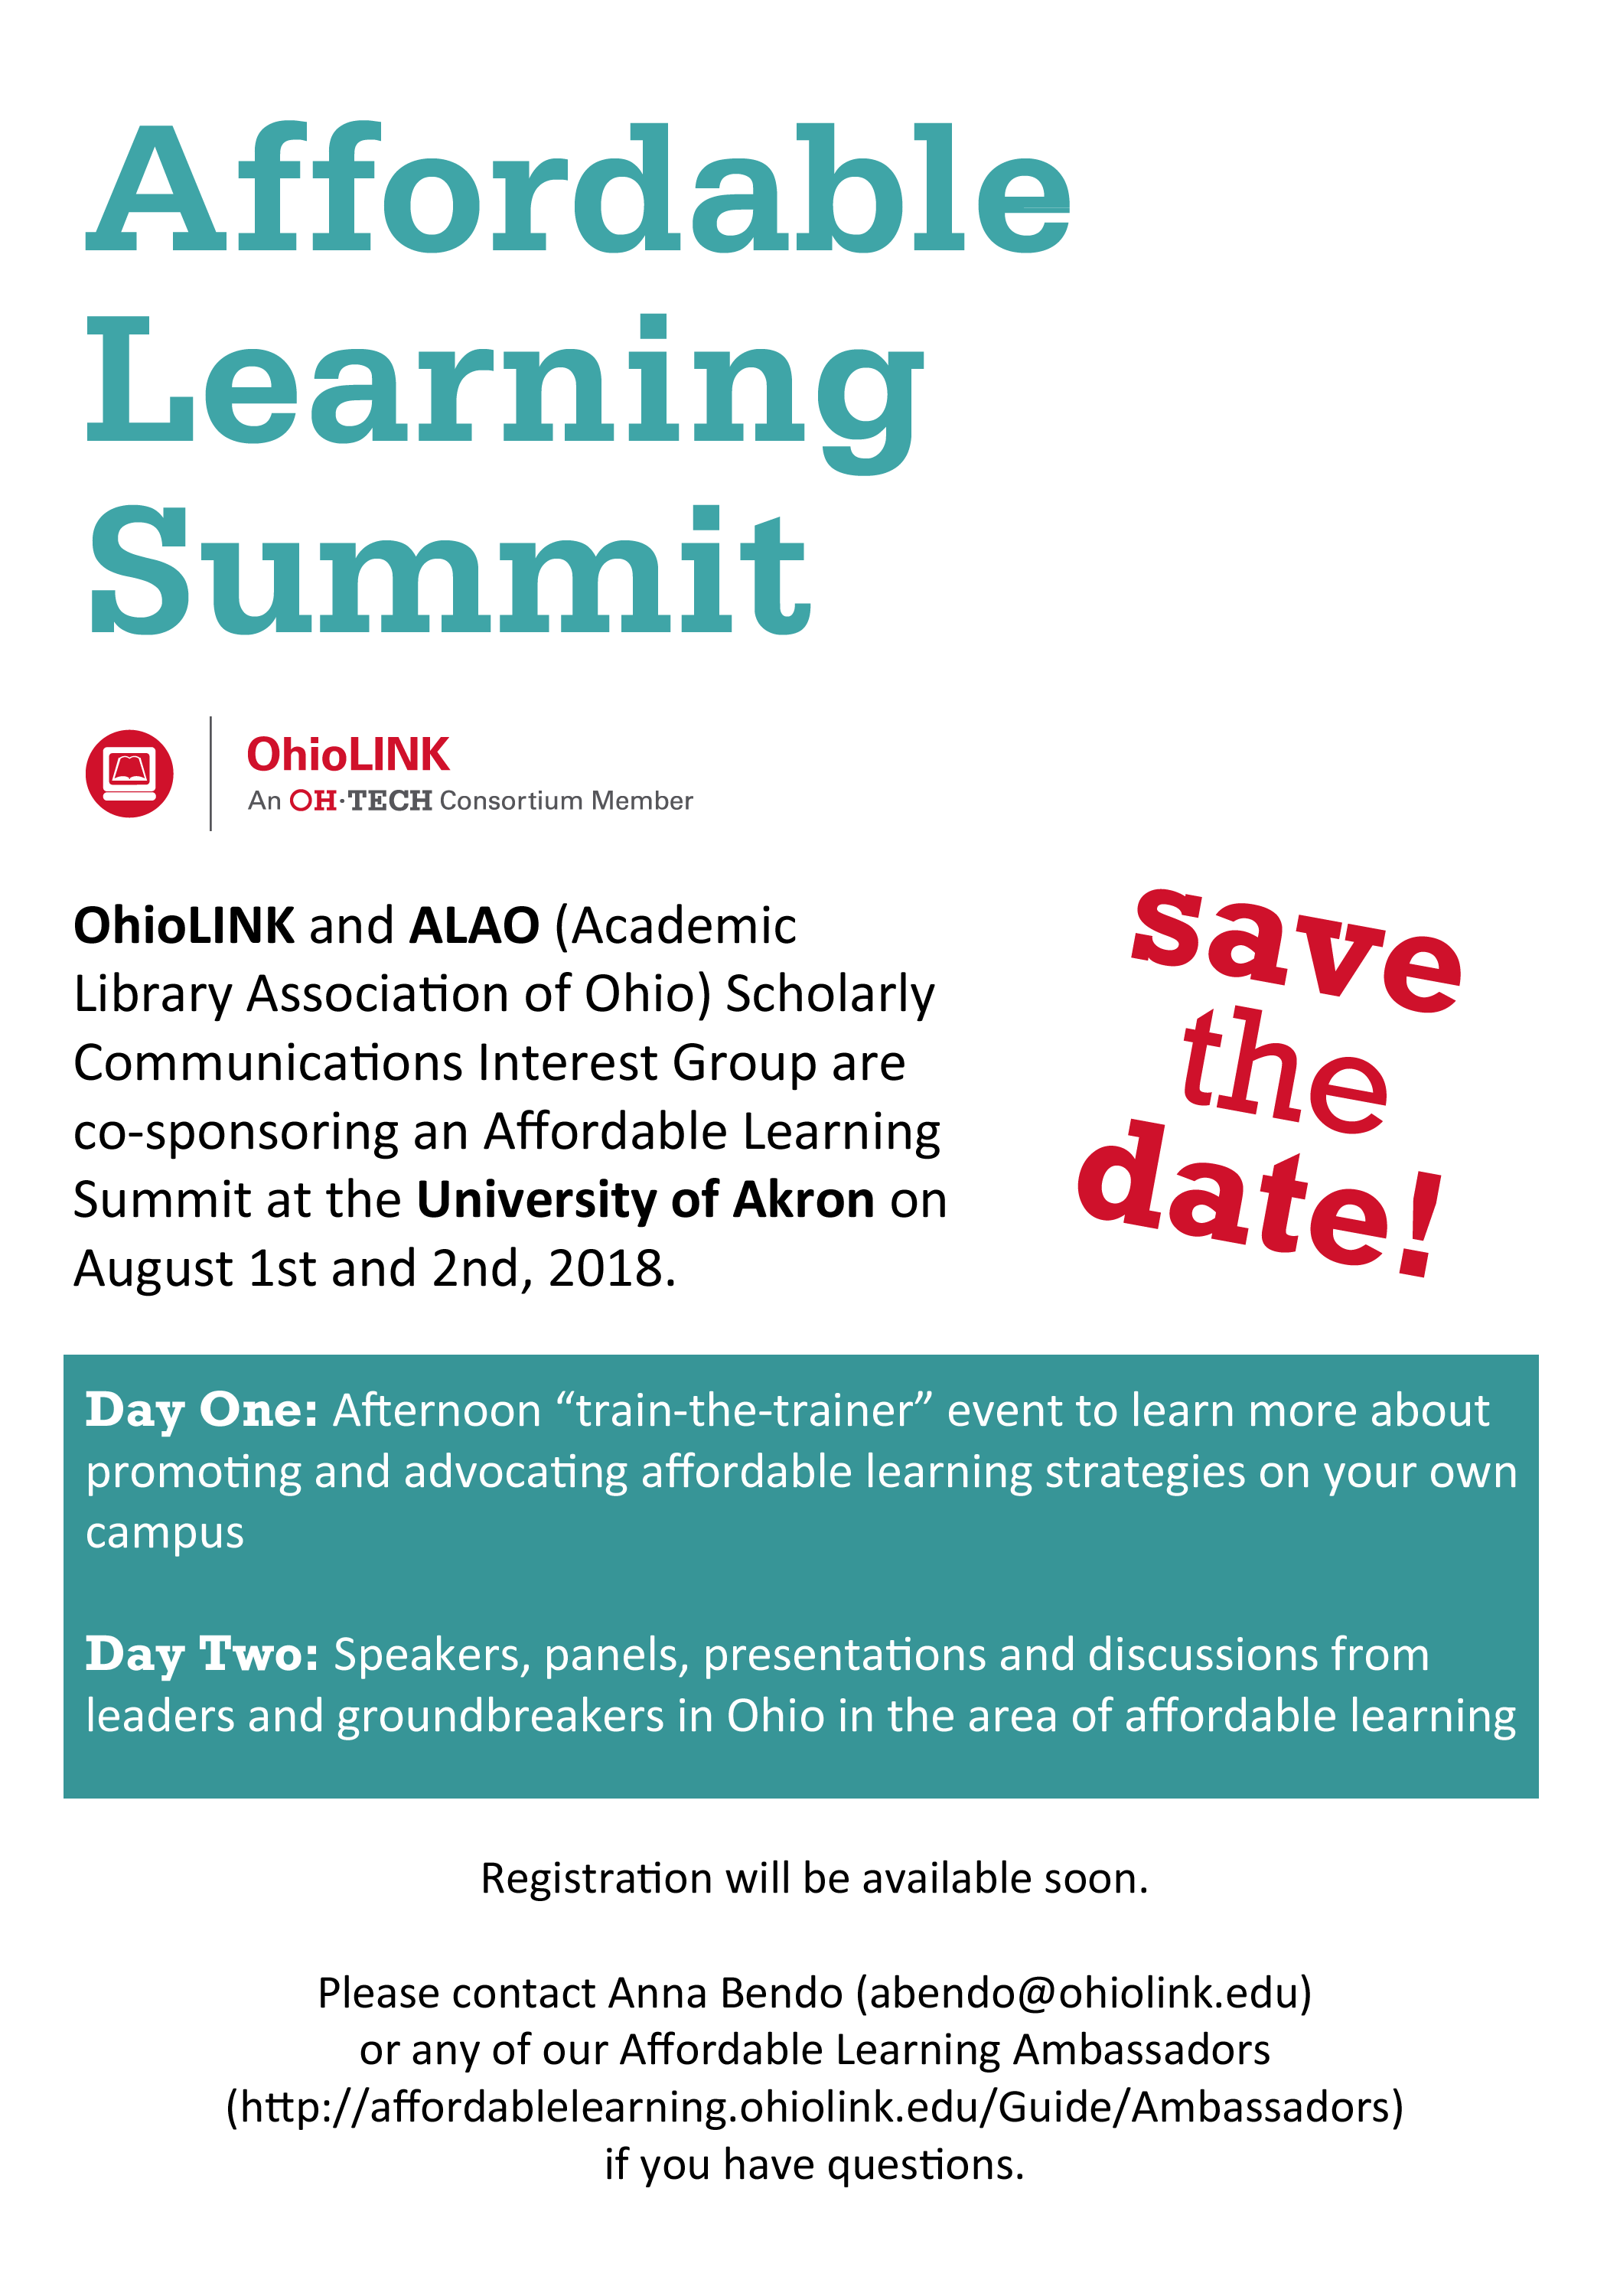 Affordable Learning Summit